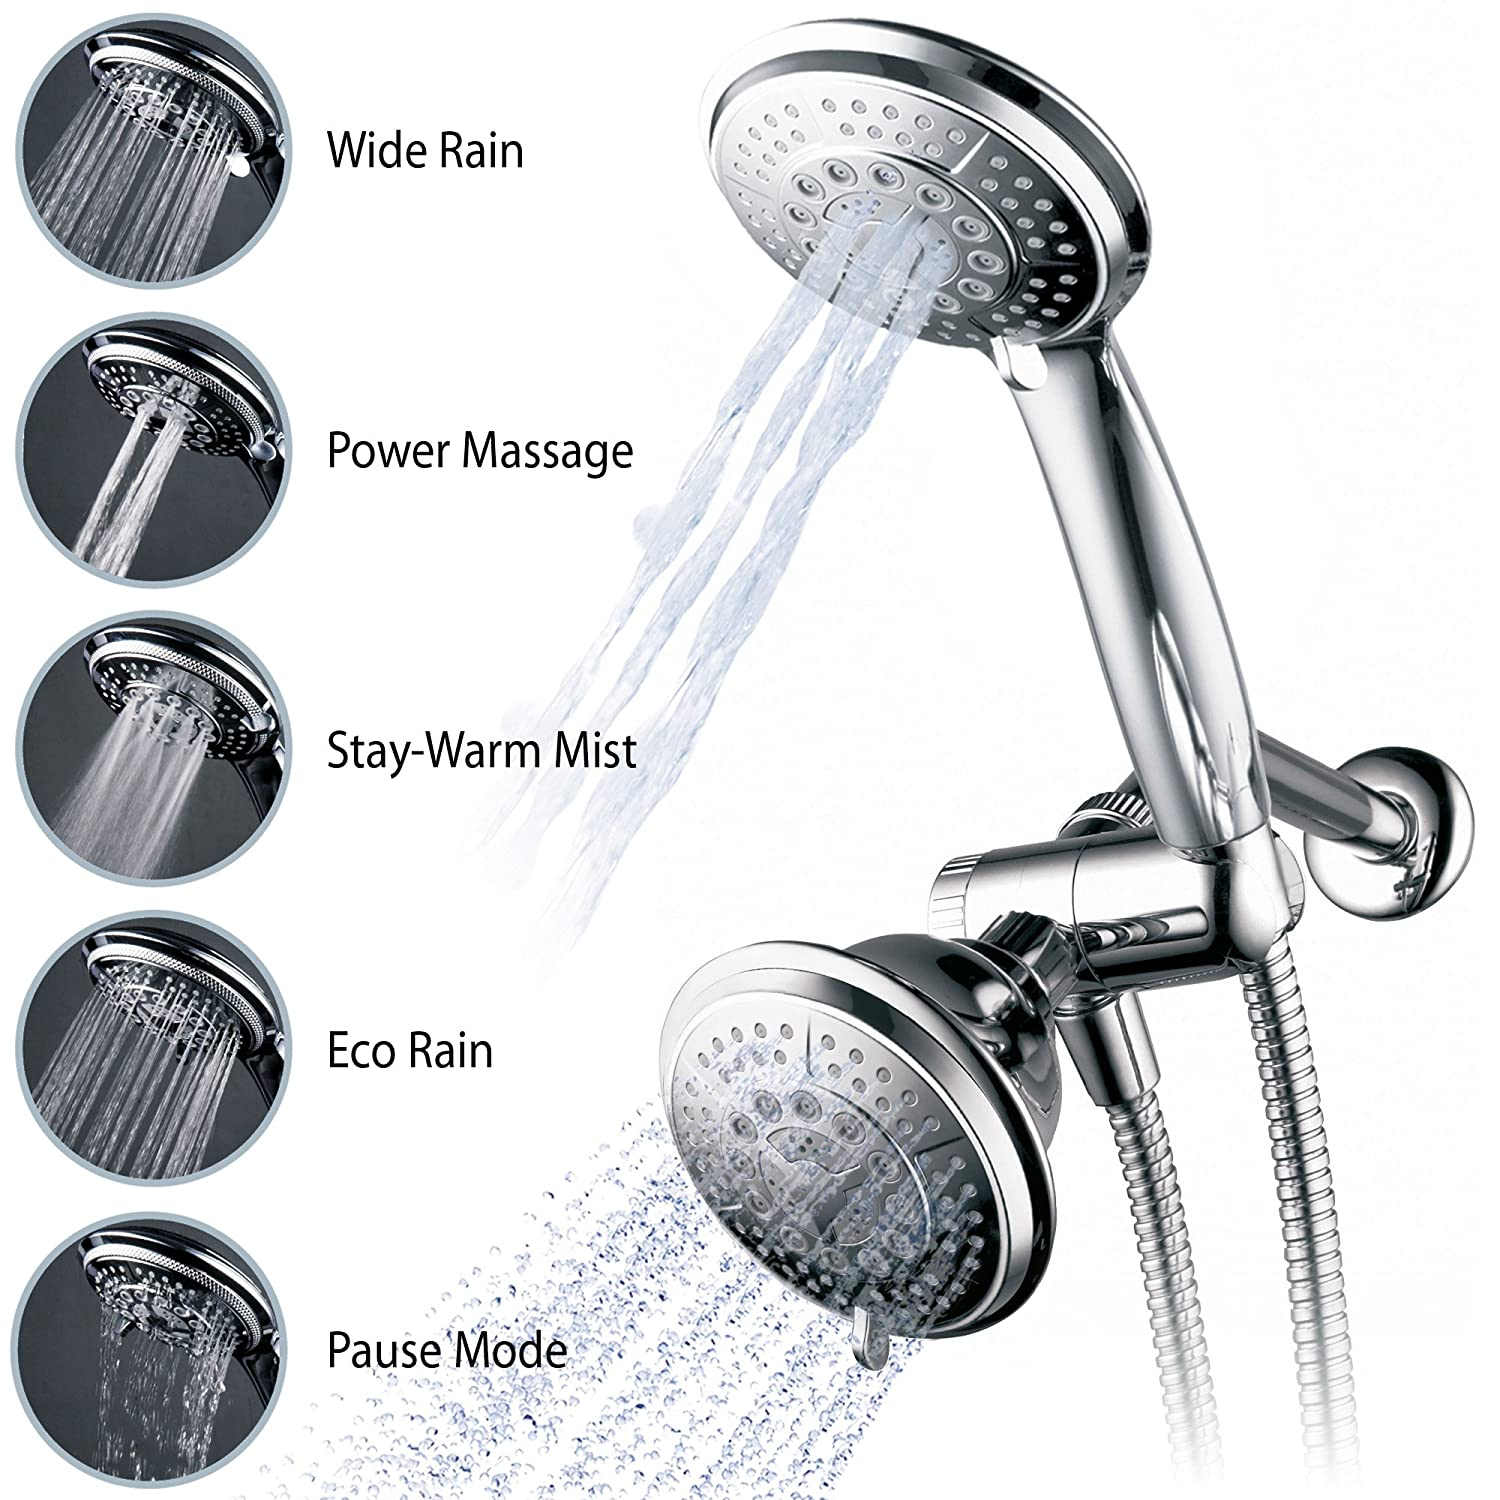 Hydroluxe Full-Chrome 24 Function Ultra-Luxury 3-way 2 in 1 Shower ...